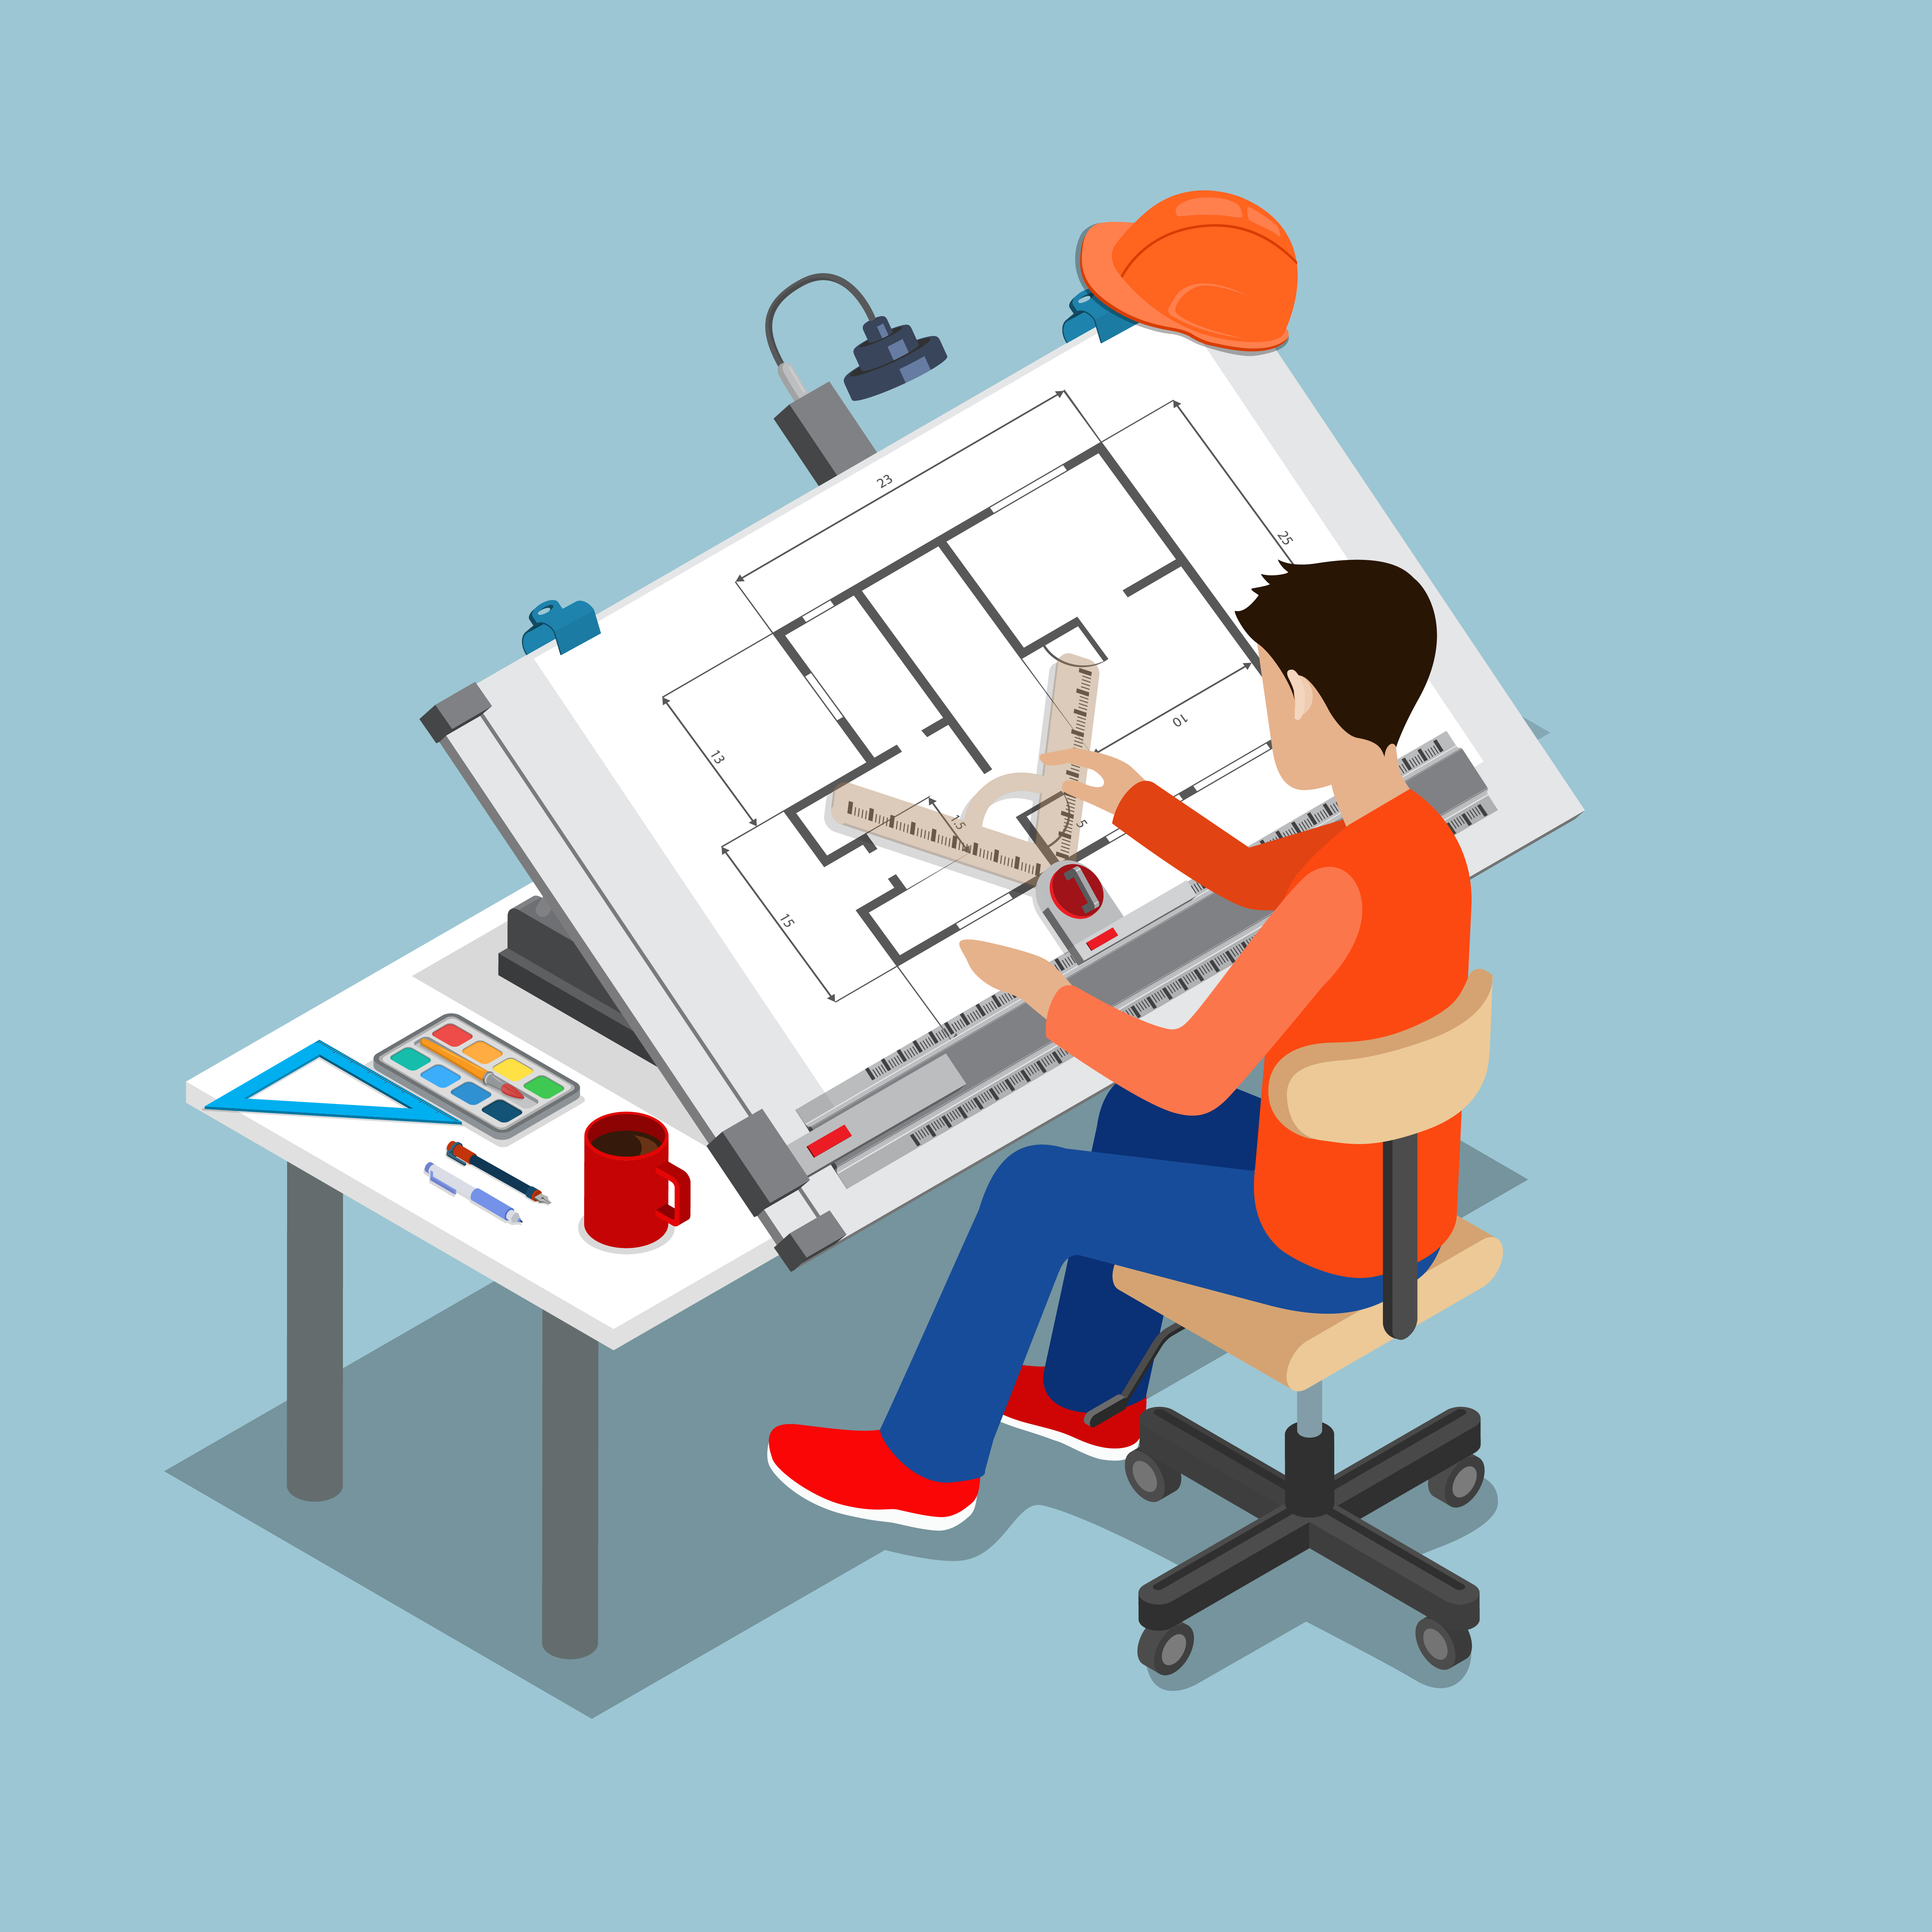 Graphic image of a man drawing plans